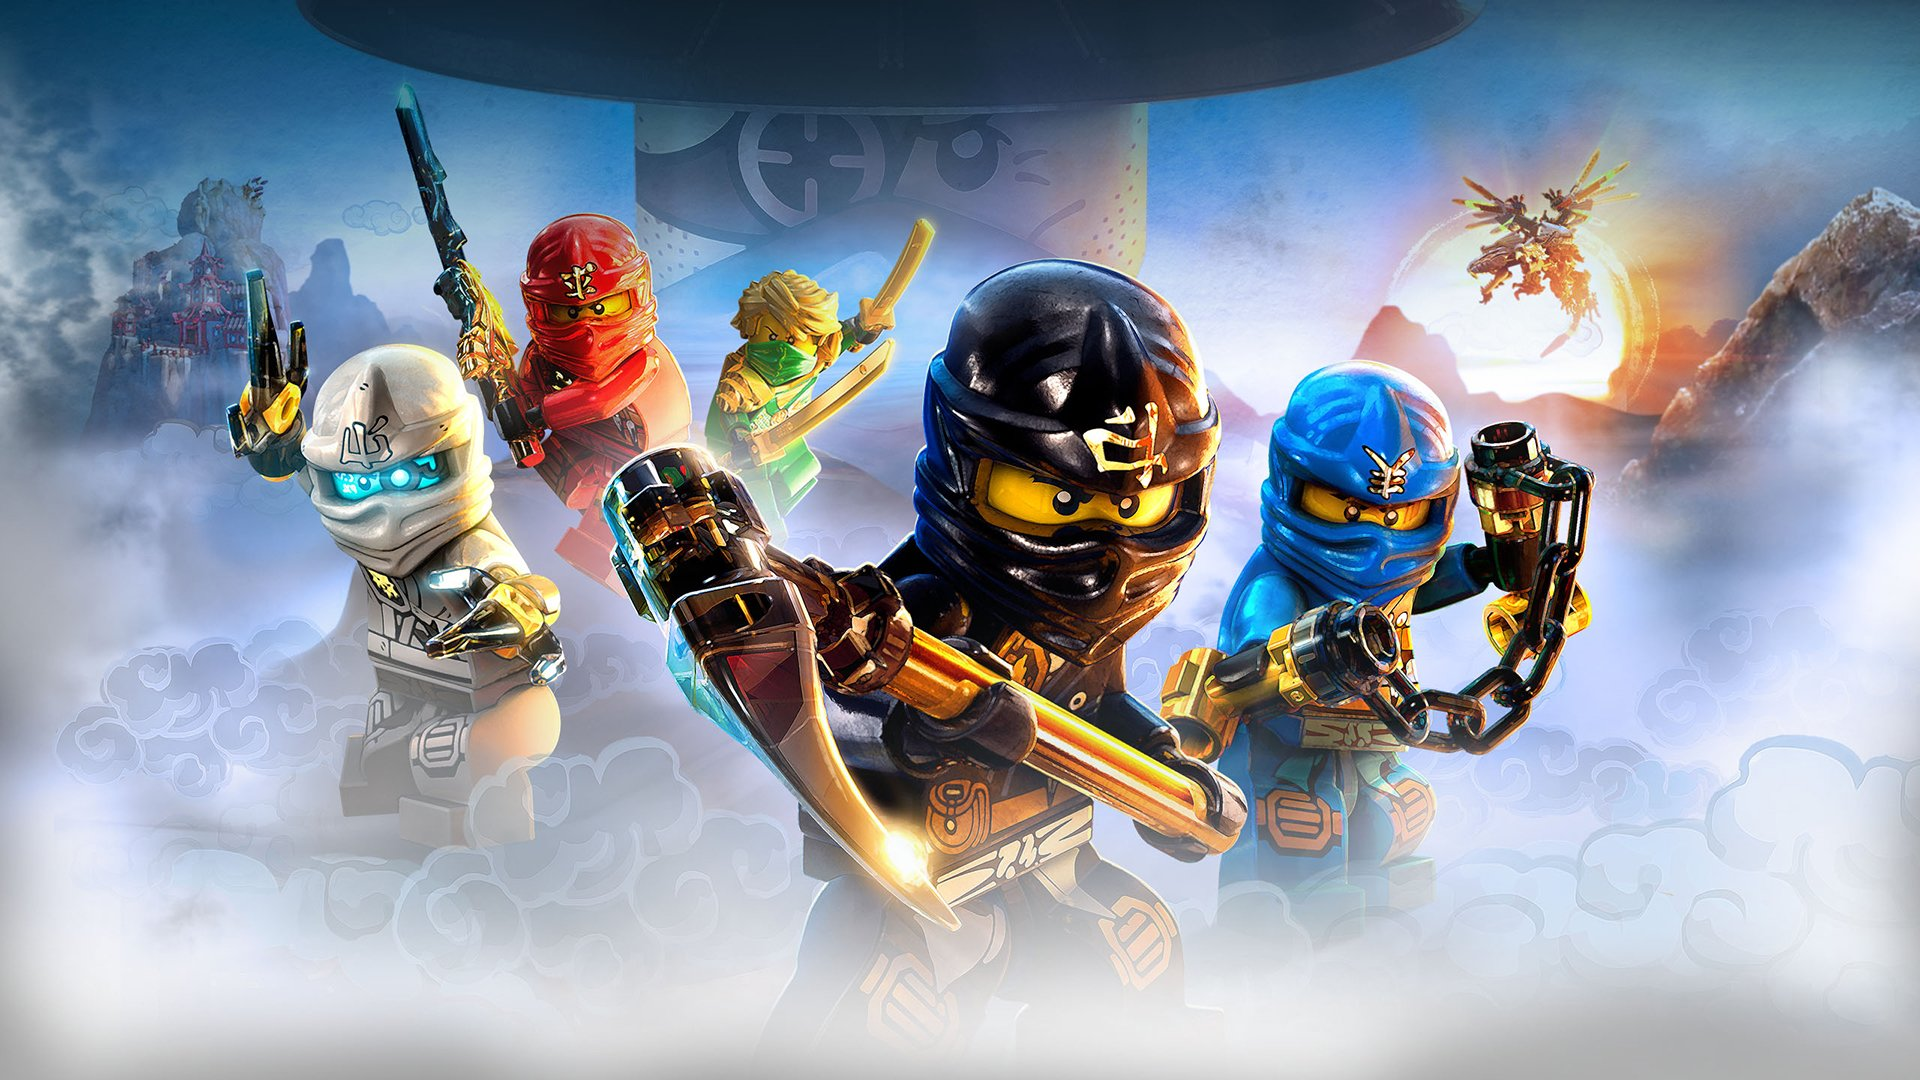 Ninjago Wallpaper - WallpaperSafariNinjago Wallpaper 2014